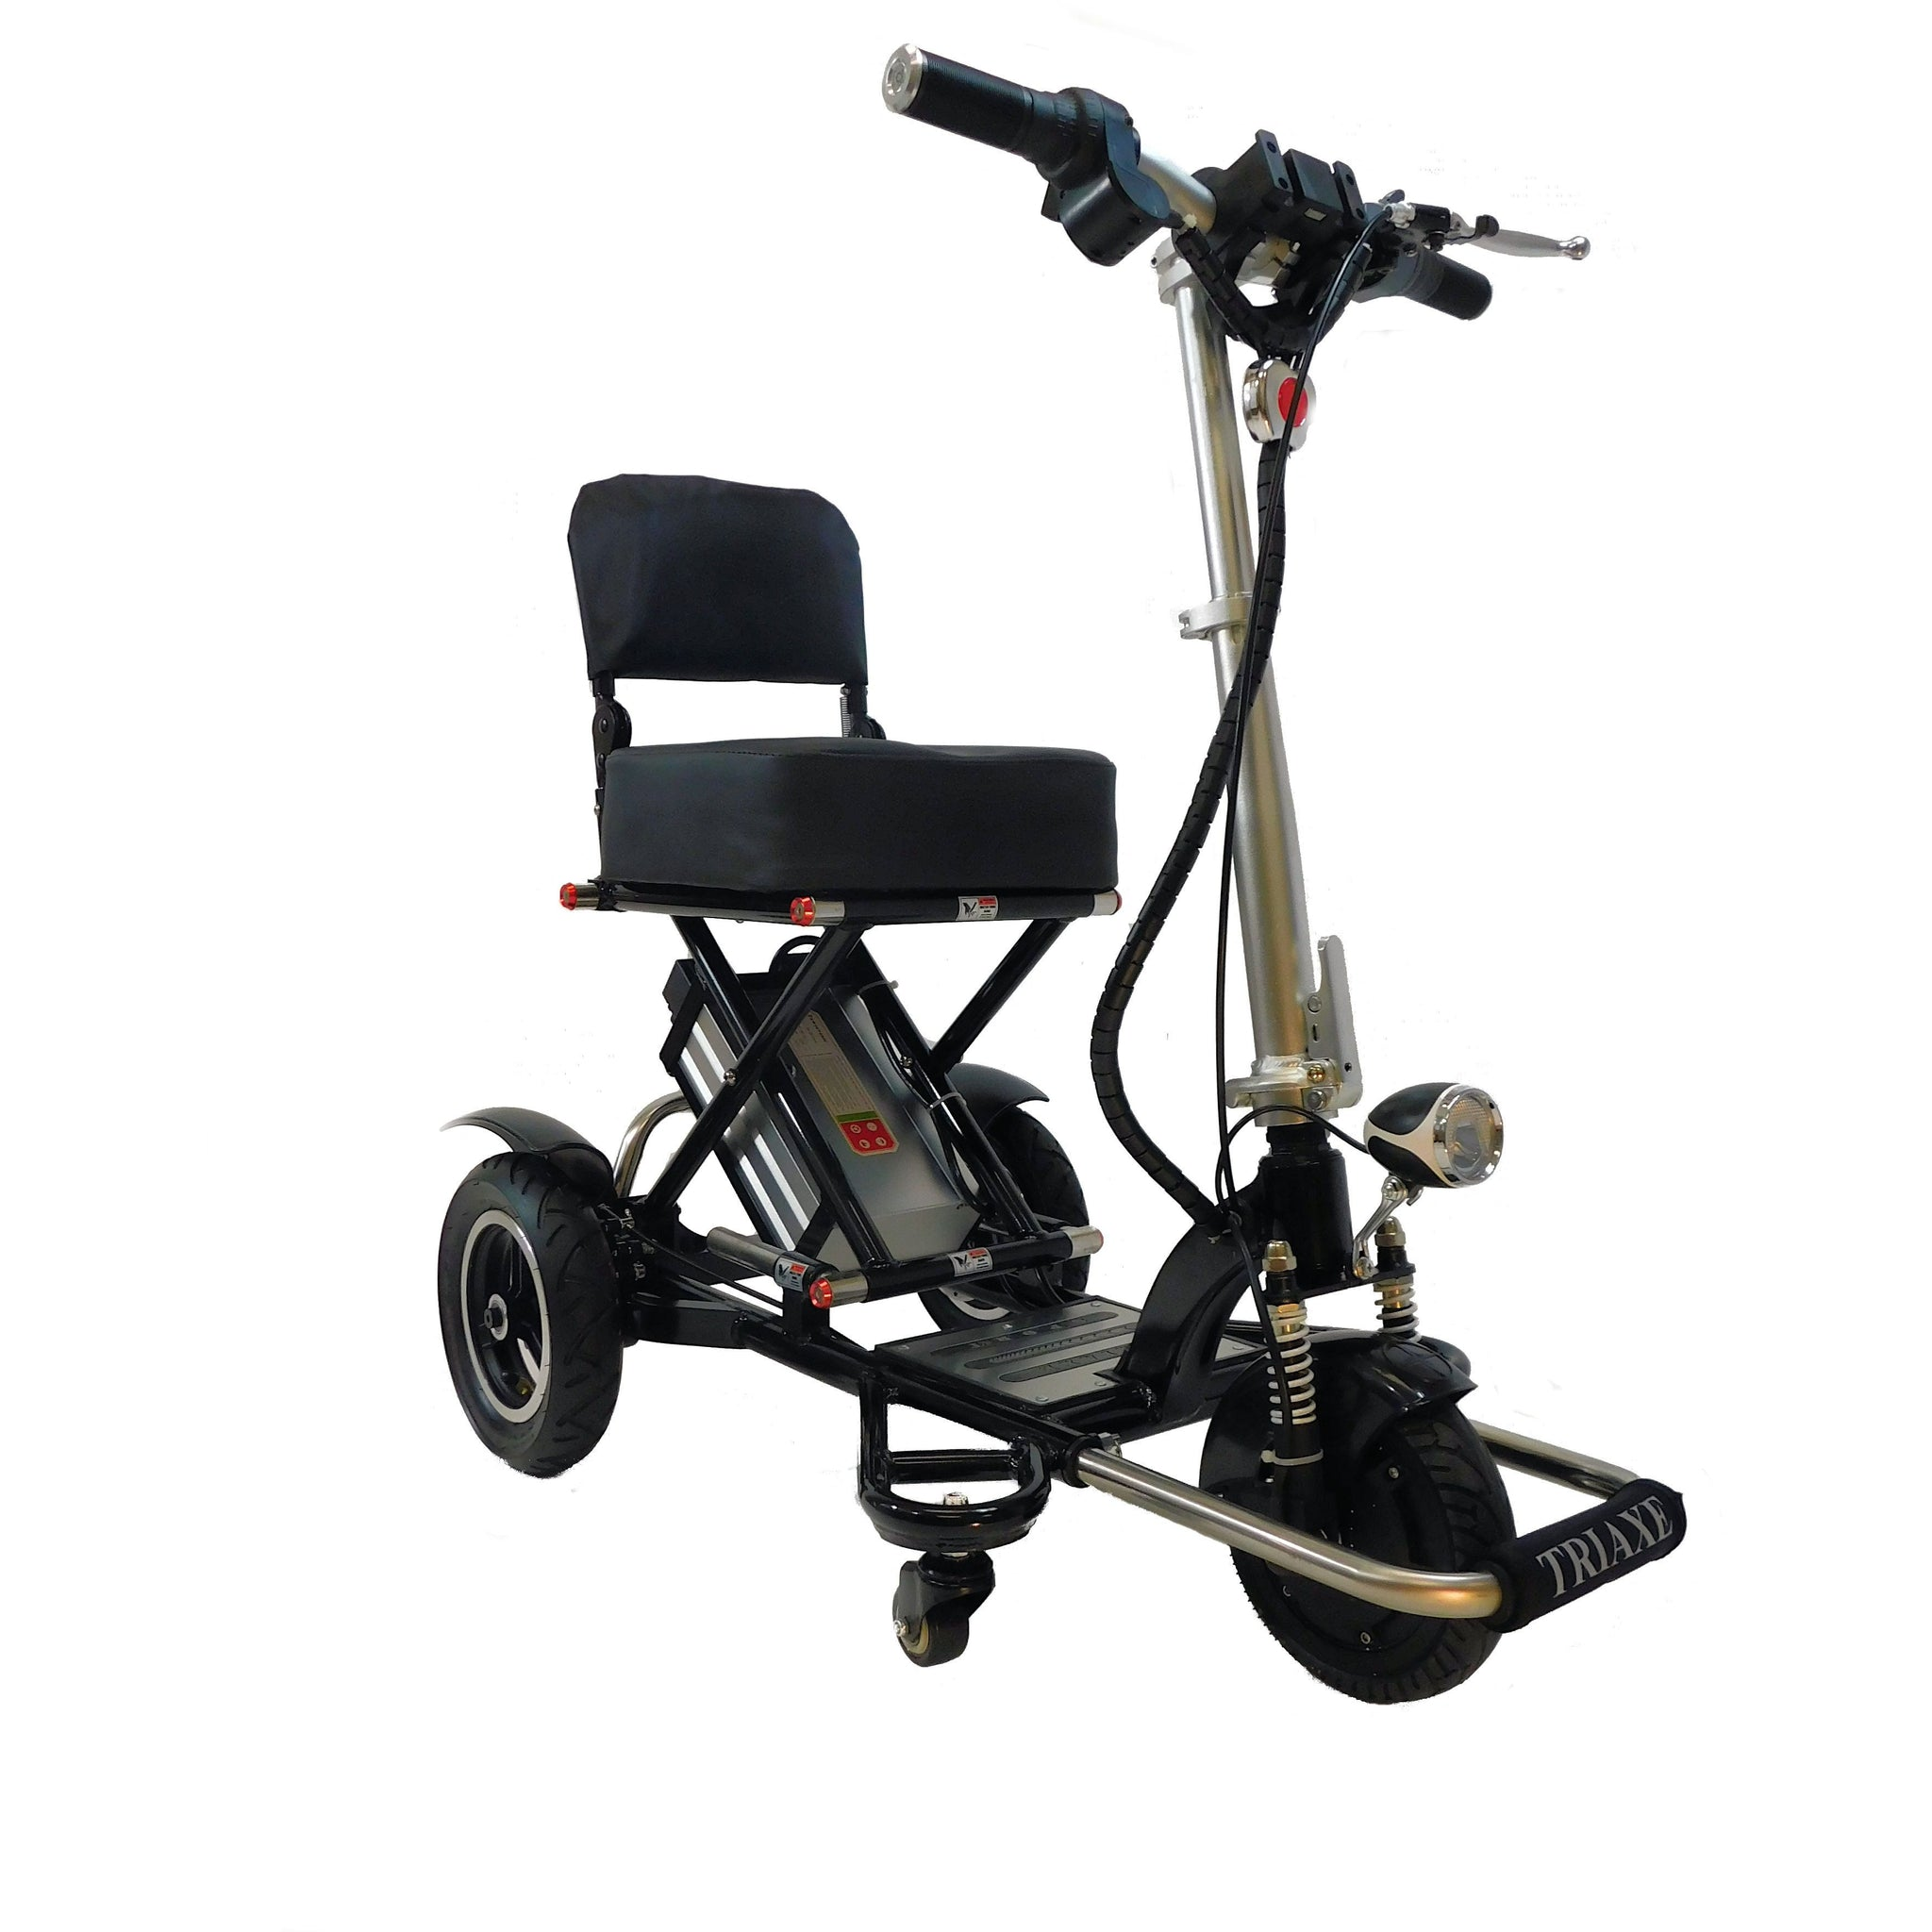 Triaxe Sport Scooter